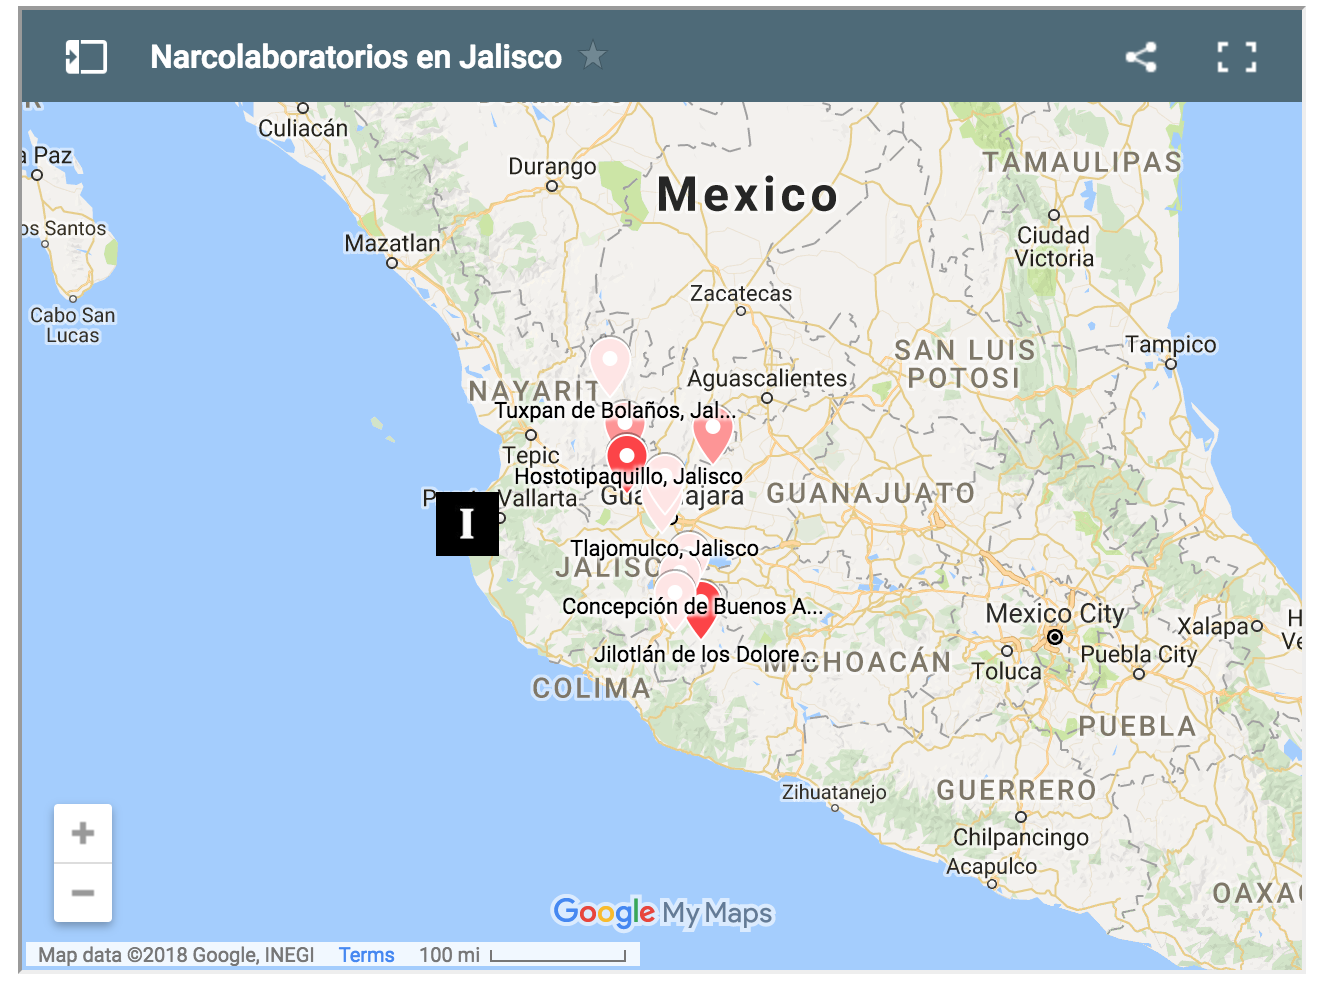 Jalisco: The Plague of Narco-Laboratories | Go to Ground